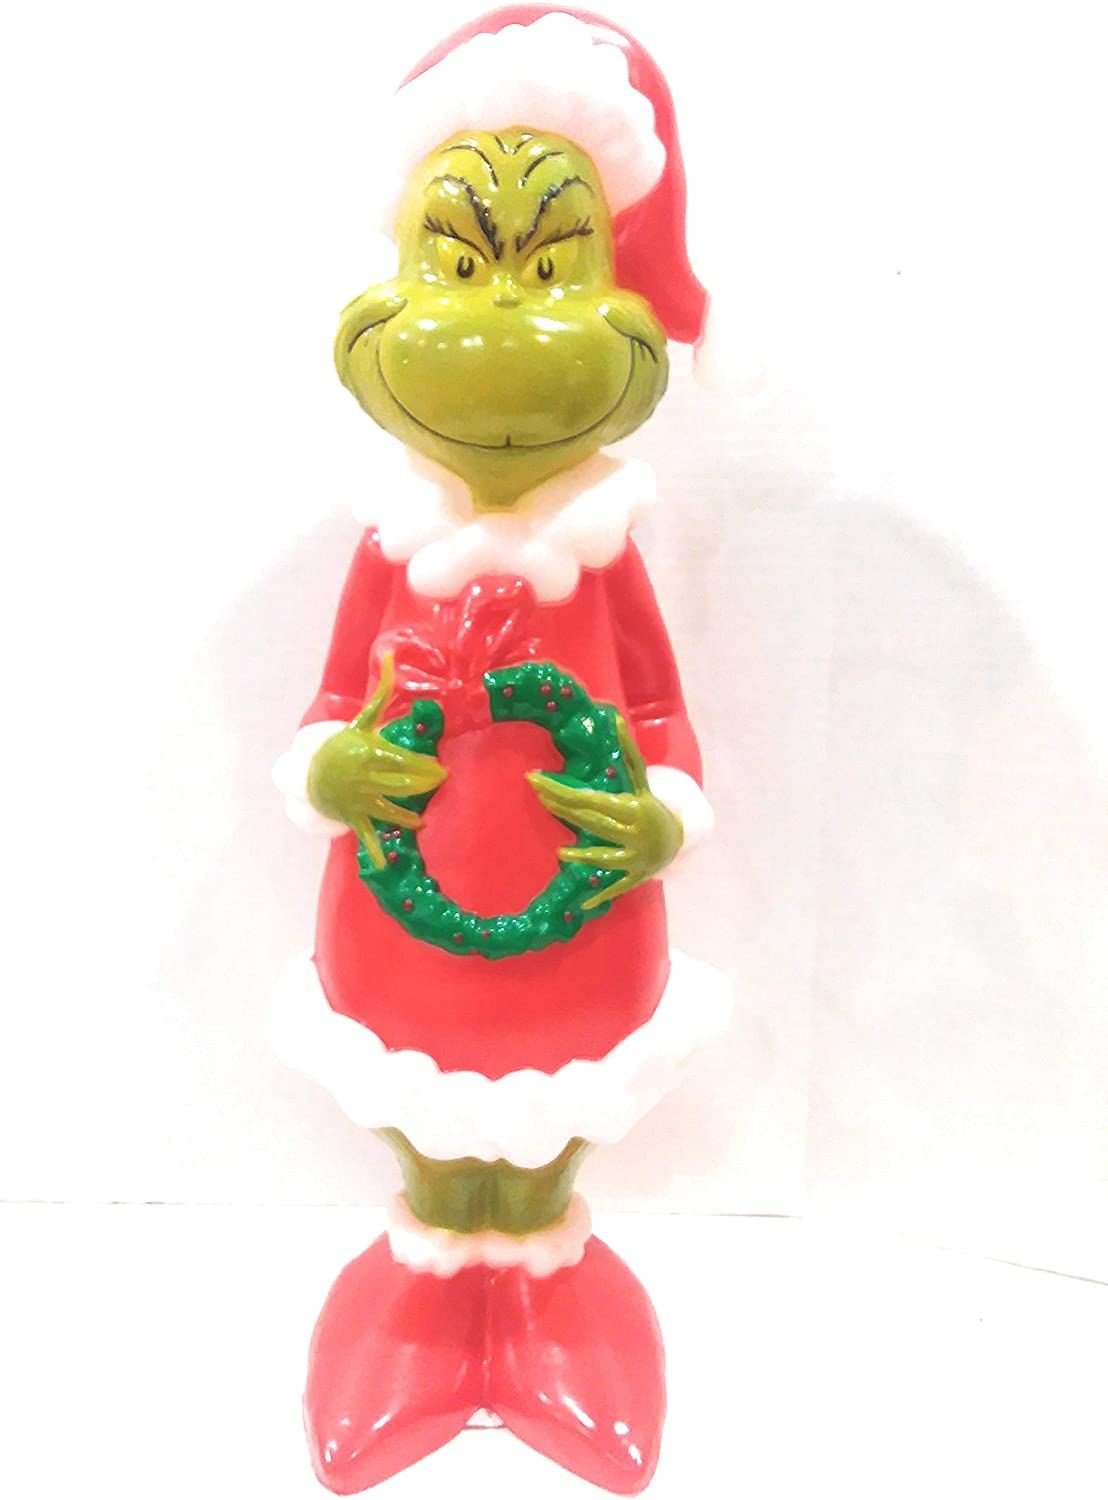 24 Grinch Figure Blow Mold Lawn Yard Christmas Decoration Plastic Light Up Lighted